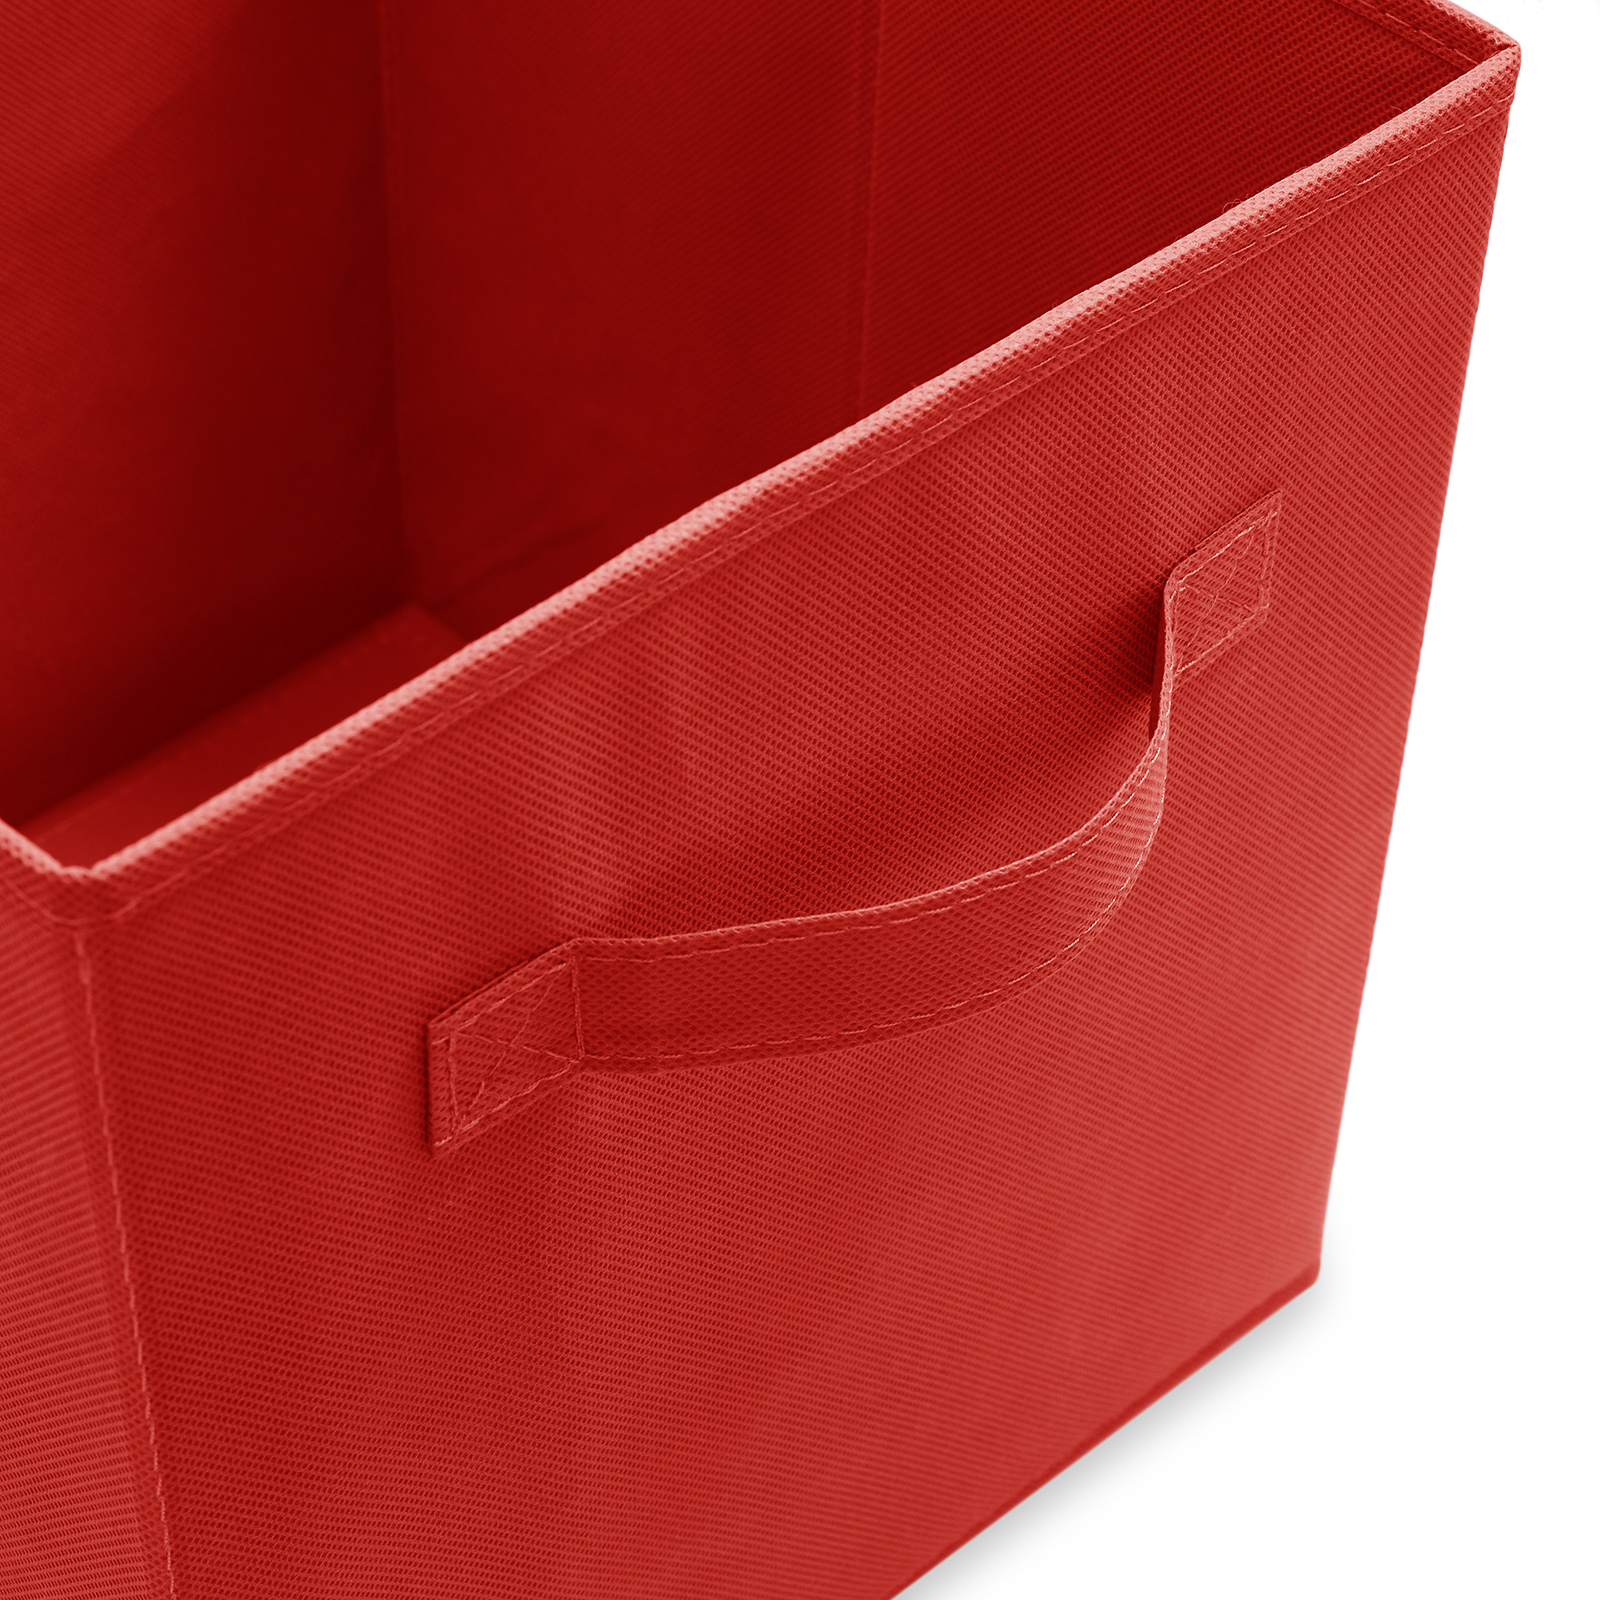 6-Collapsible-Foldable-Cloth-Fabric-Cubby-Cube-Storage-Bins-Baskets-for-Shelves thumbnail 64